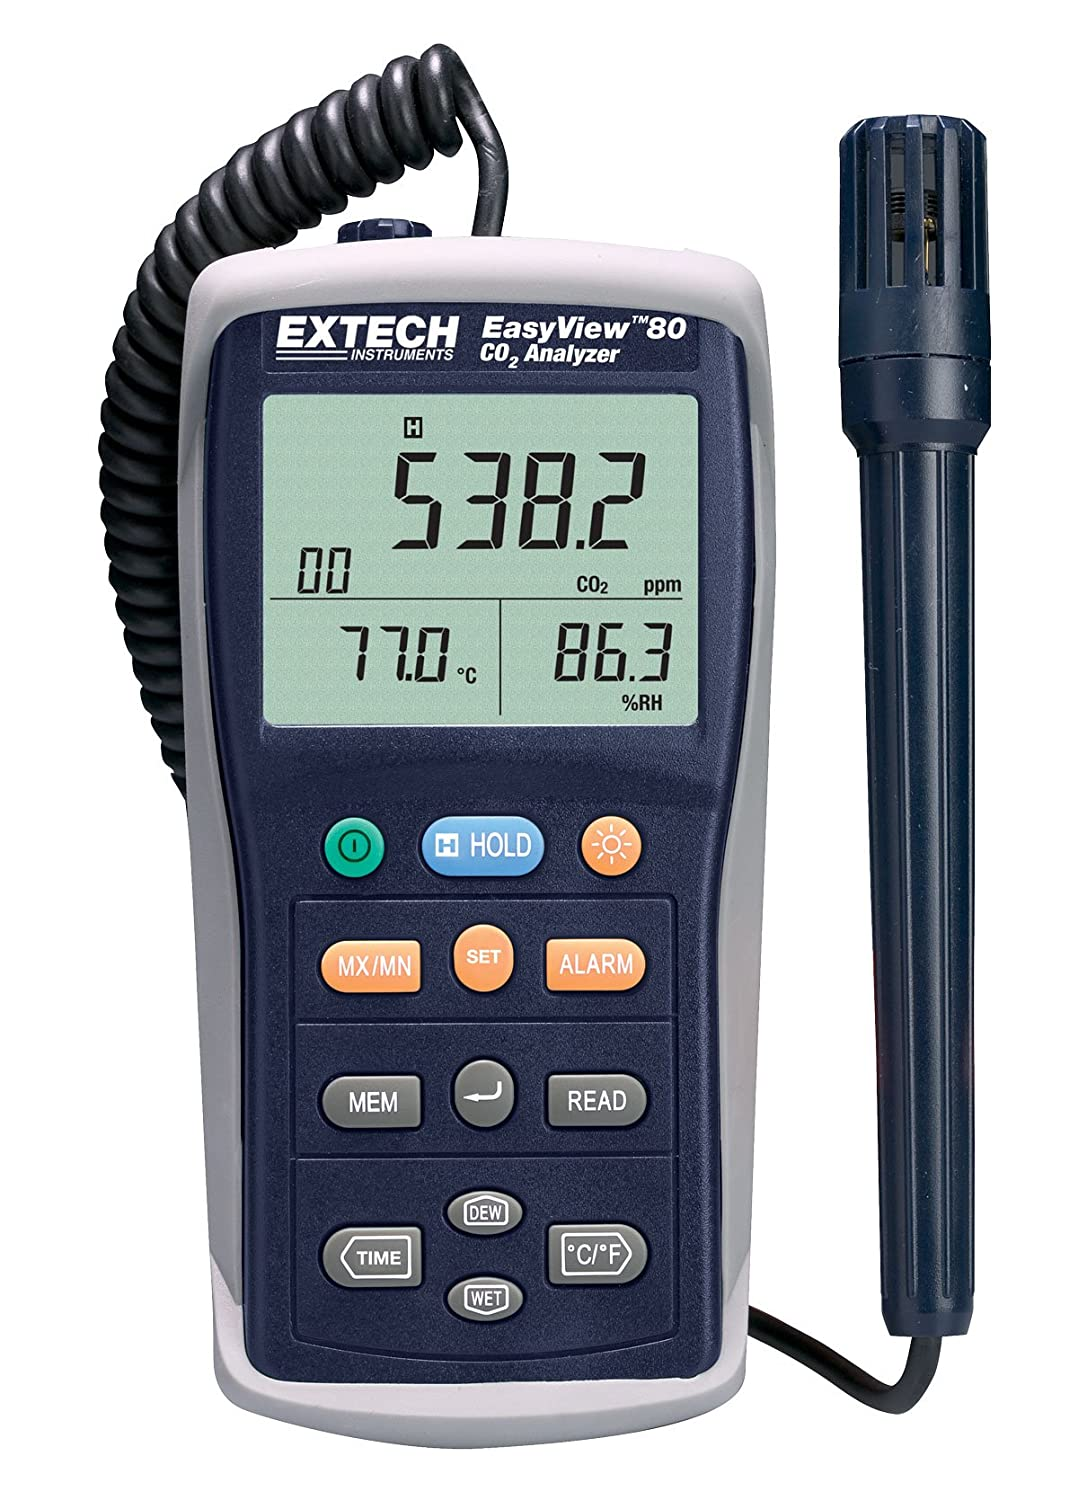 Amazon.com: Extech EA80 Easy View Indoor Air Quality Meter ...